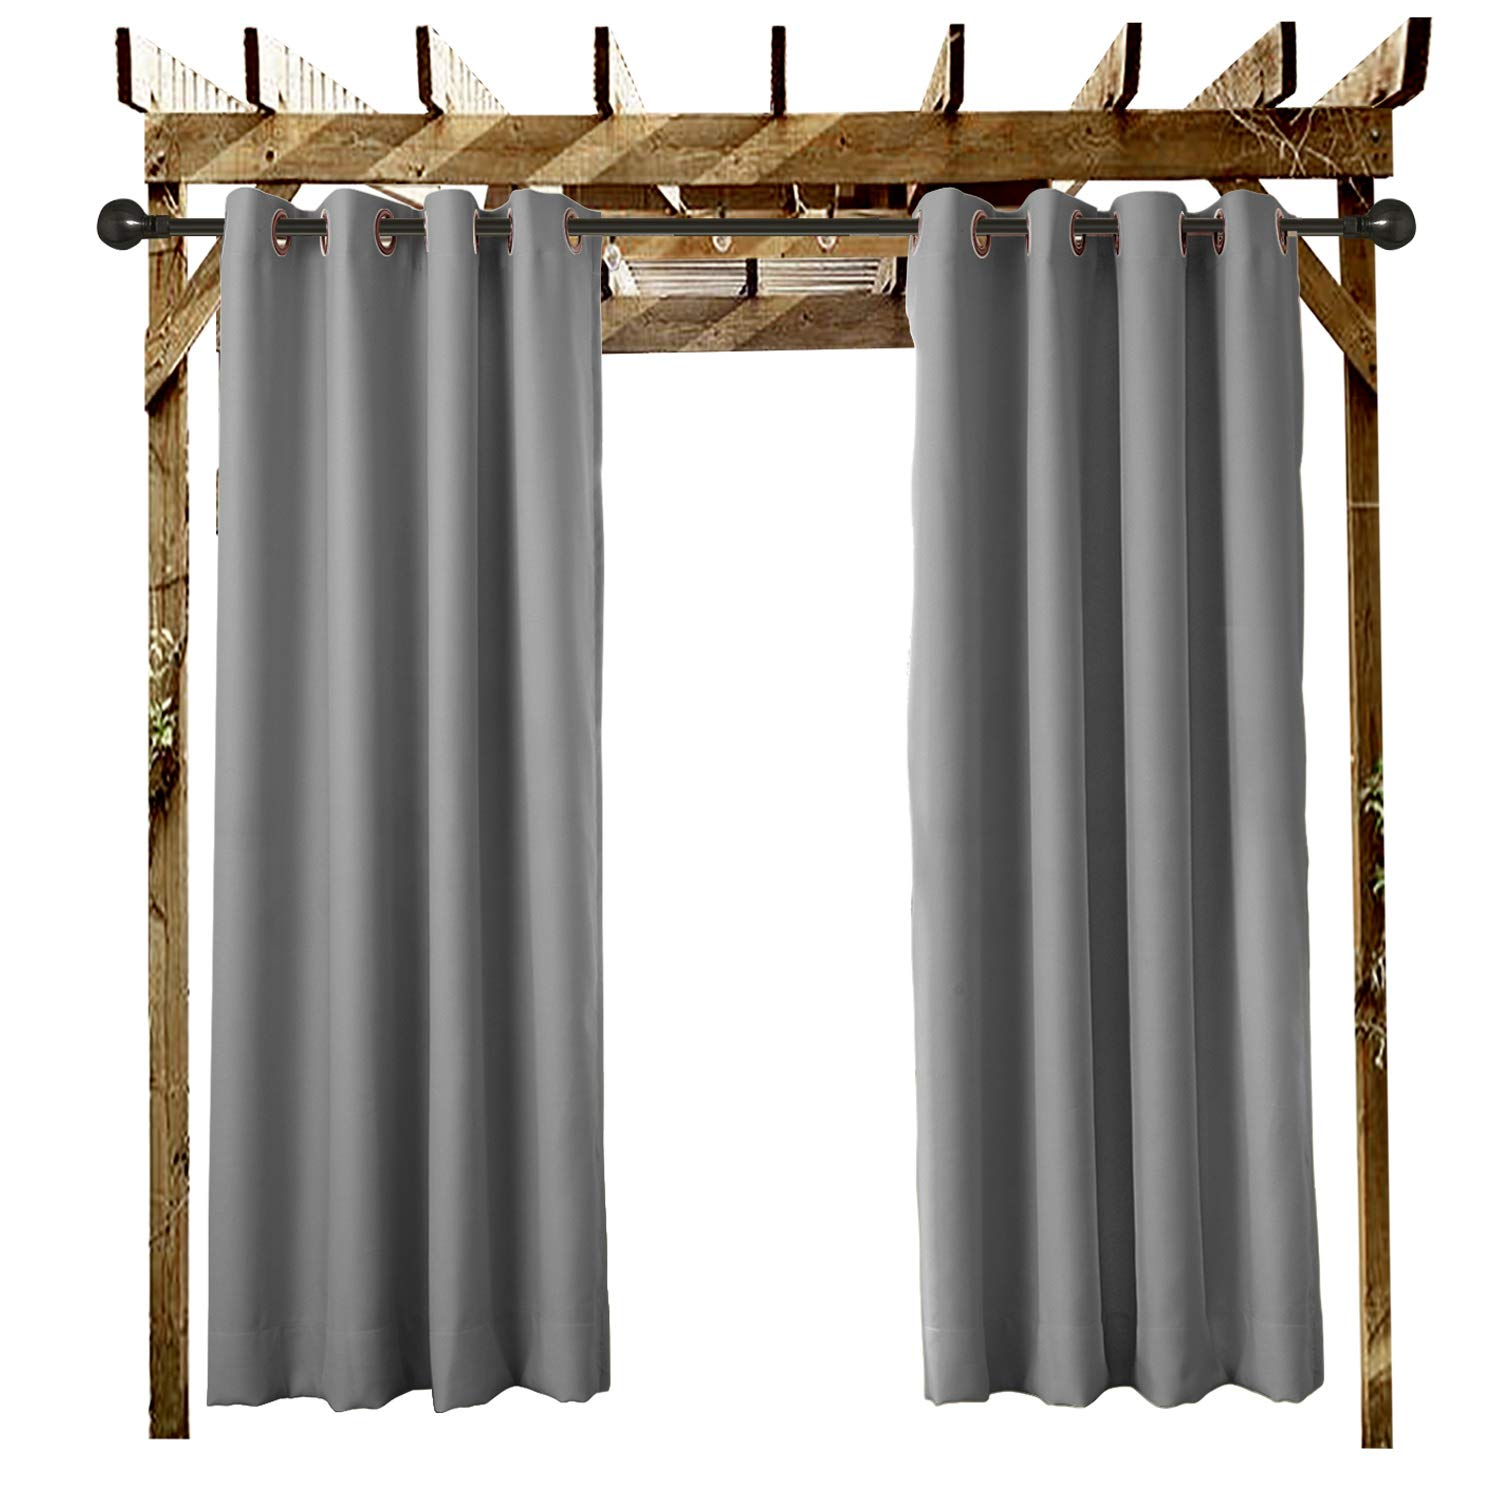 and Beach Home Pergola . Dock 1 Panel Covered Patio Outdoor Curtain Grommet Eyelet Navy 84 W x 72 L For Front Porch Cabana Gazebo